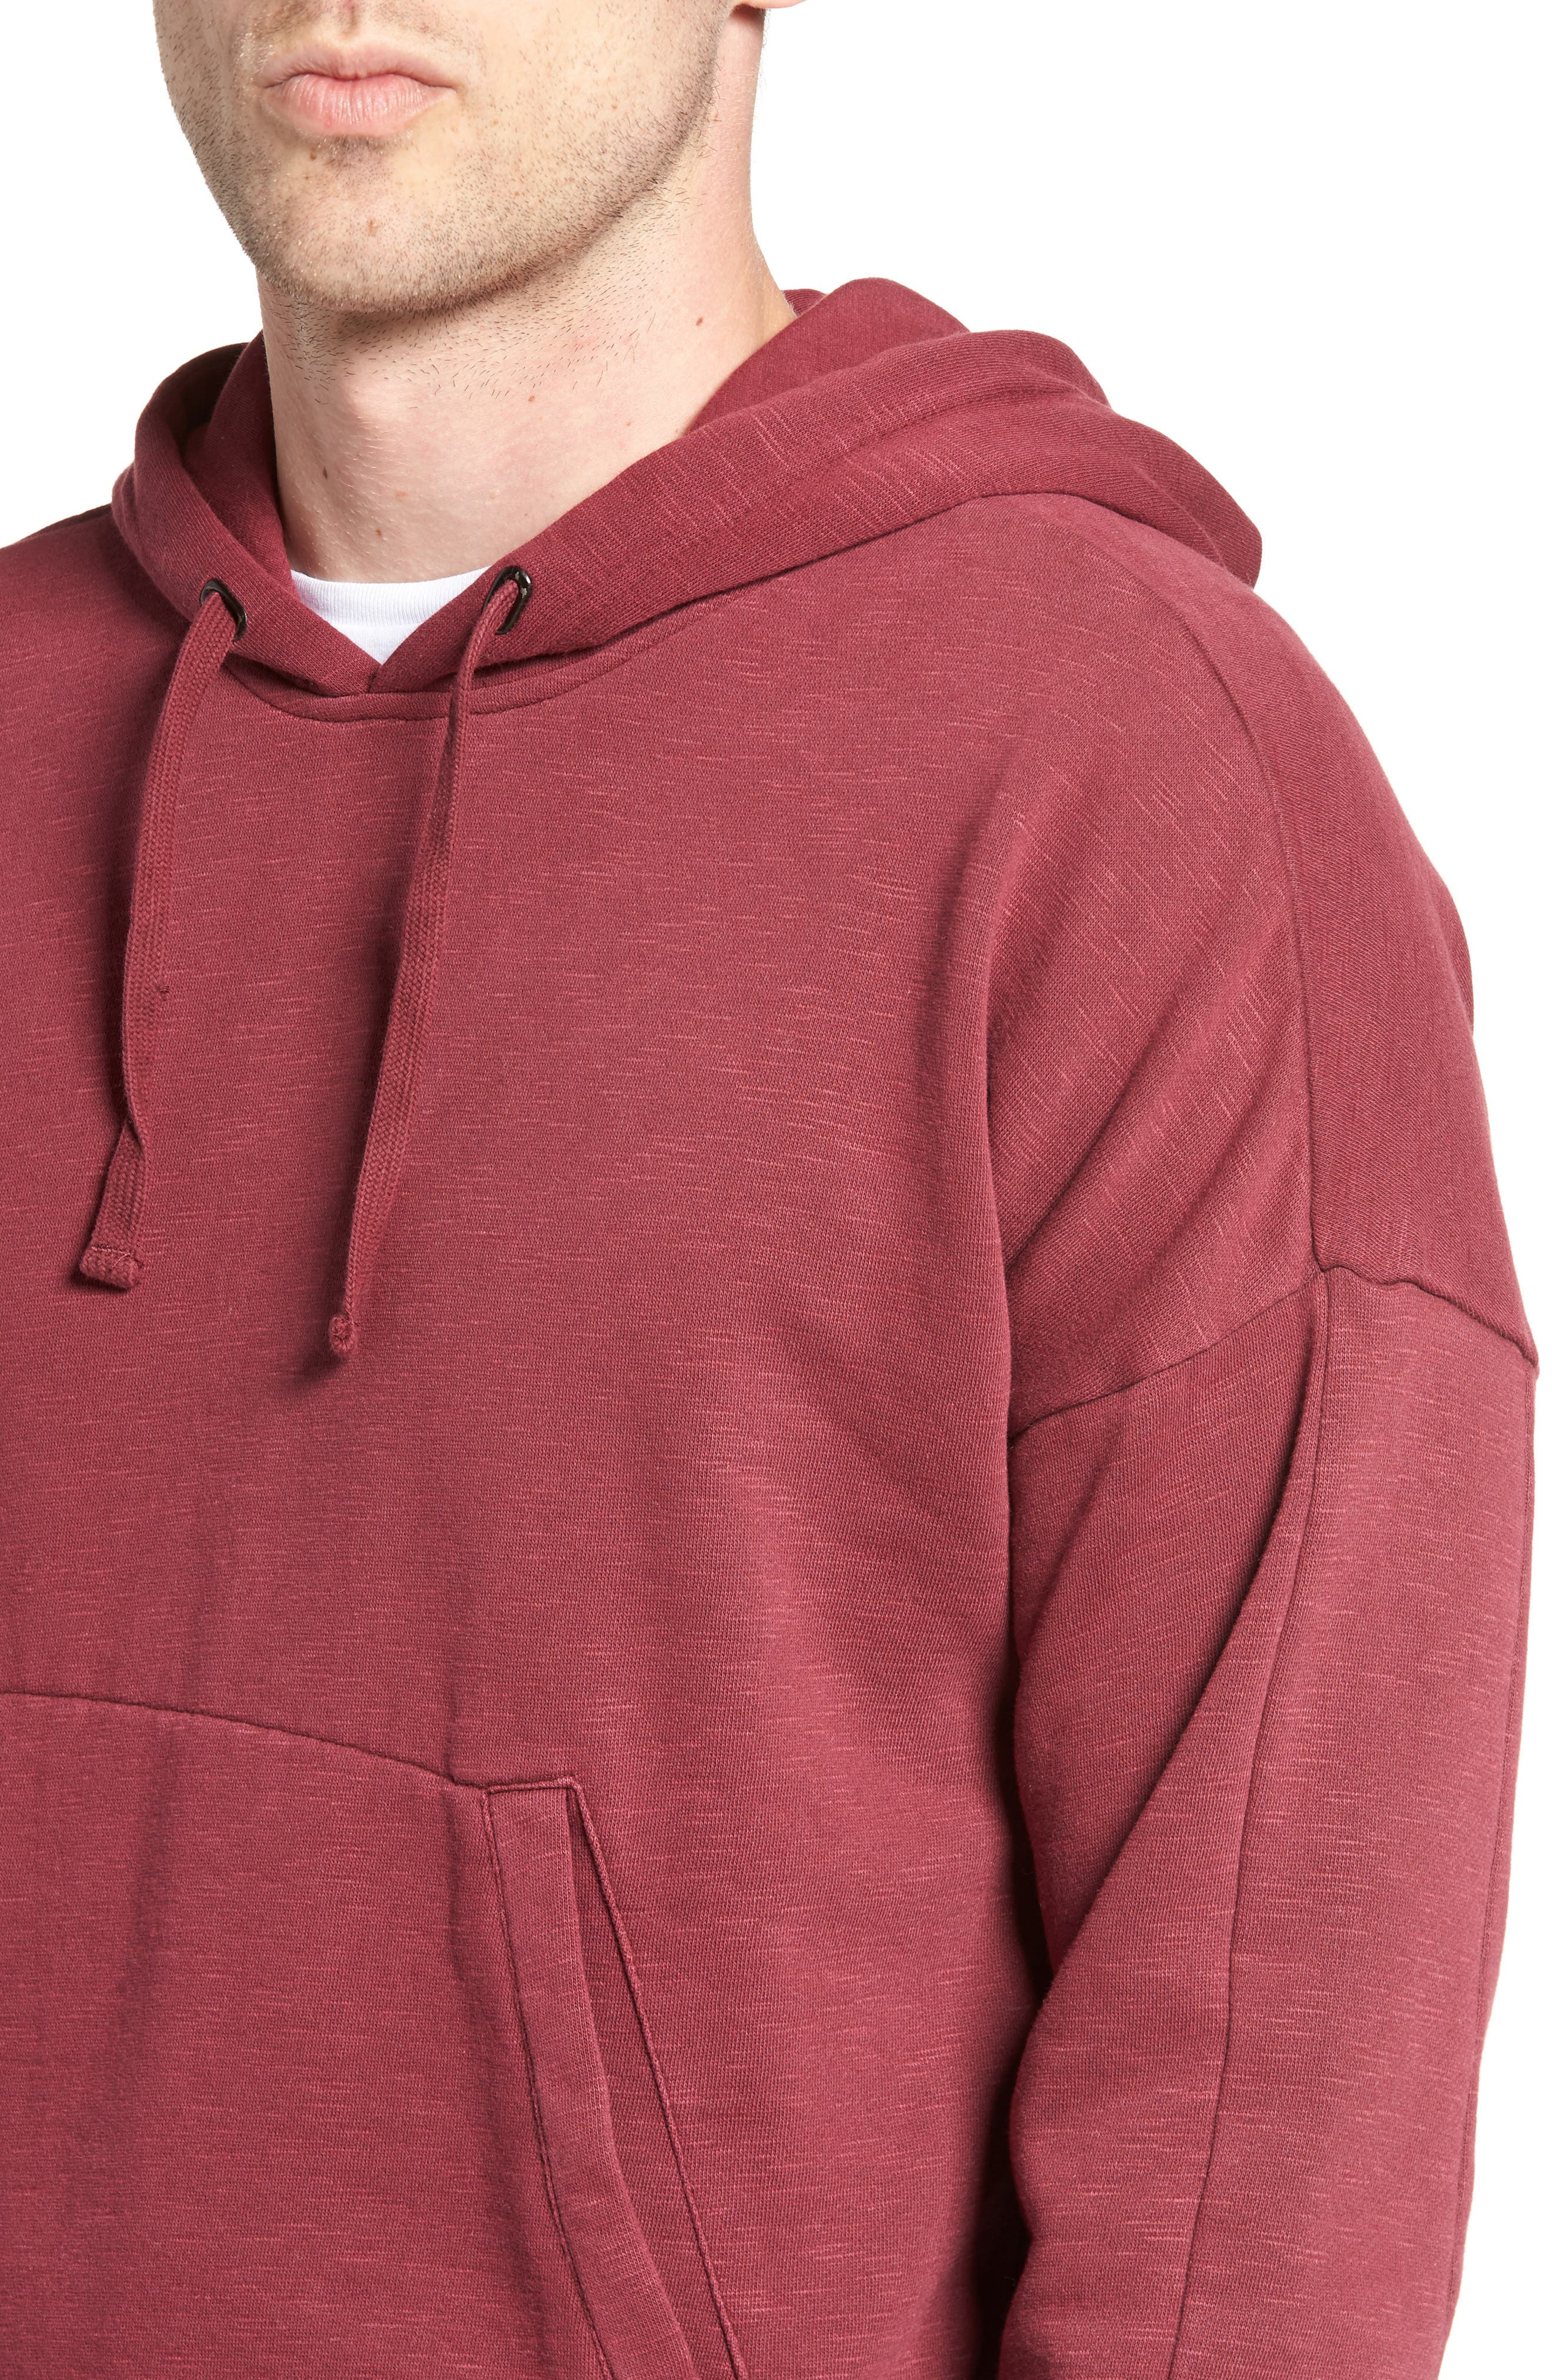 Turf Hooded Sweatshirt,                             Alternate thumbnail 4, color,                             Rosewood